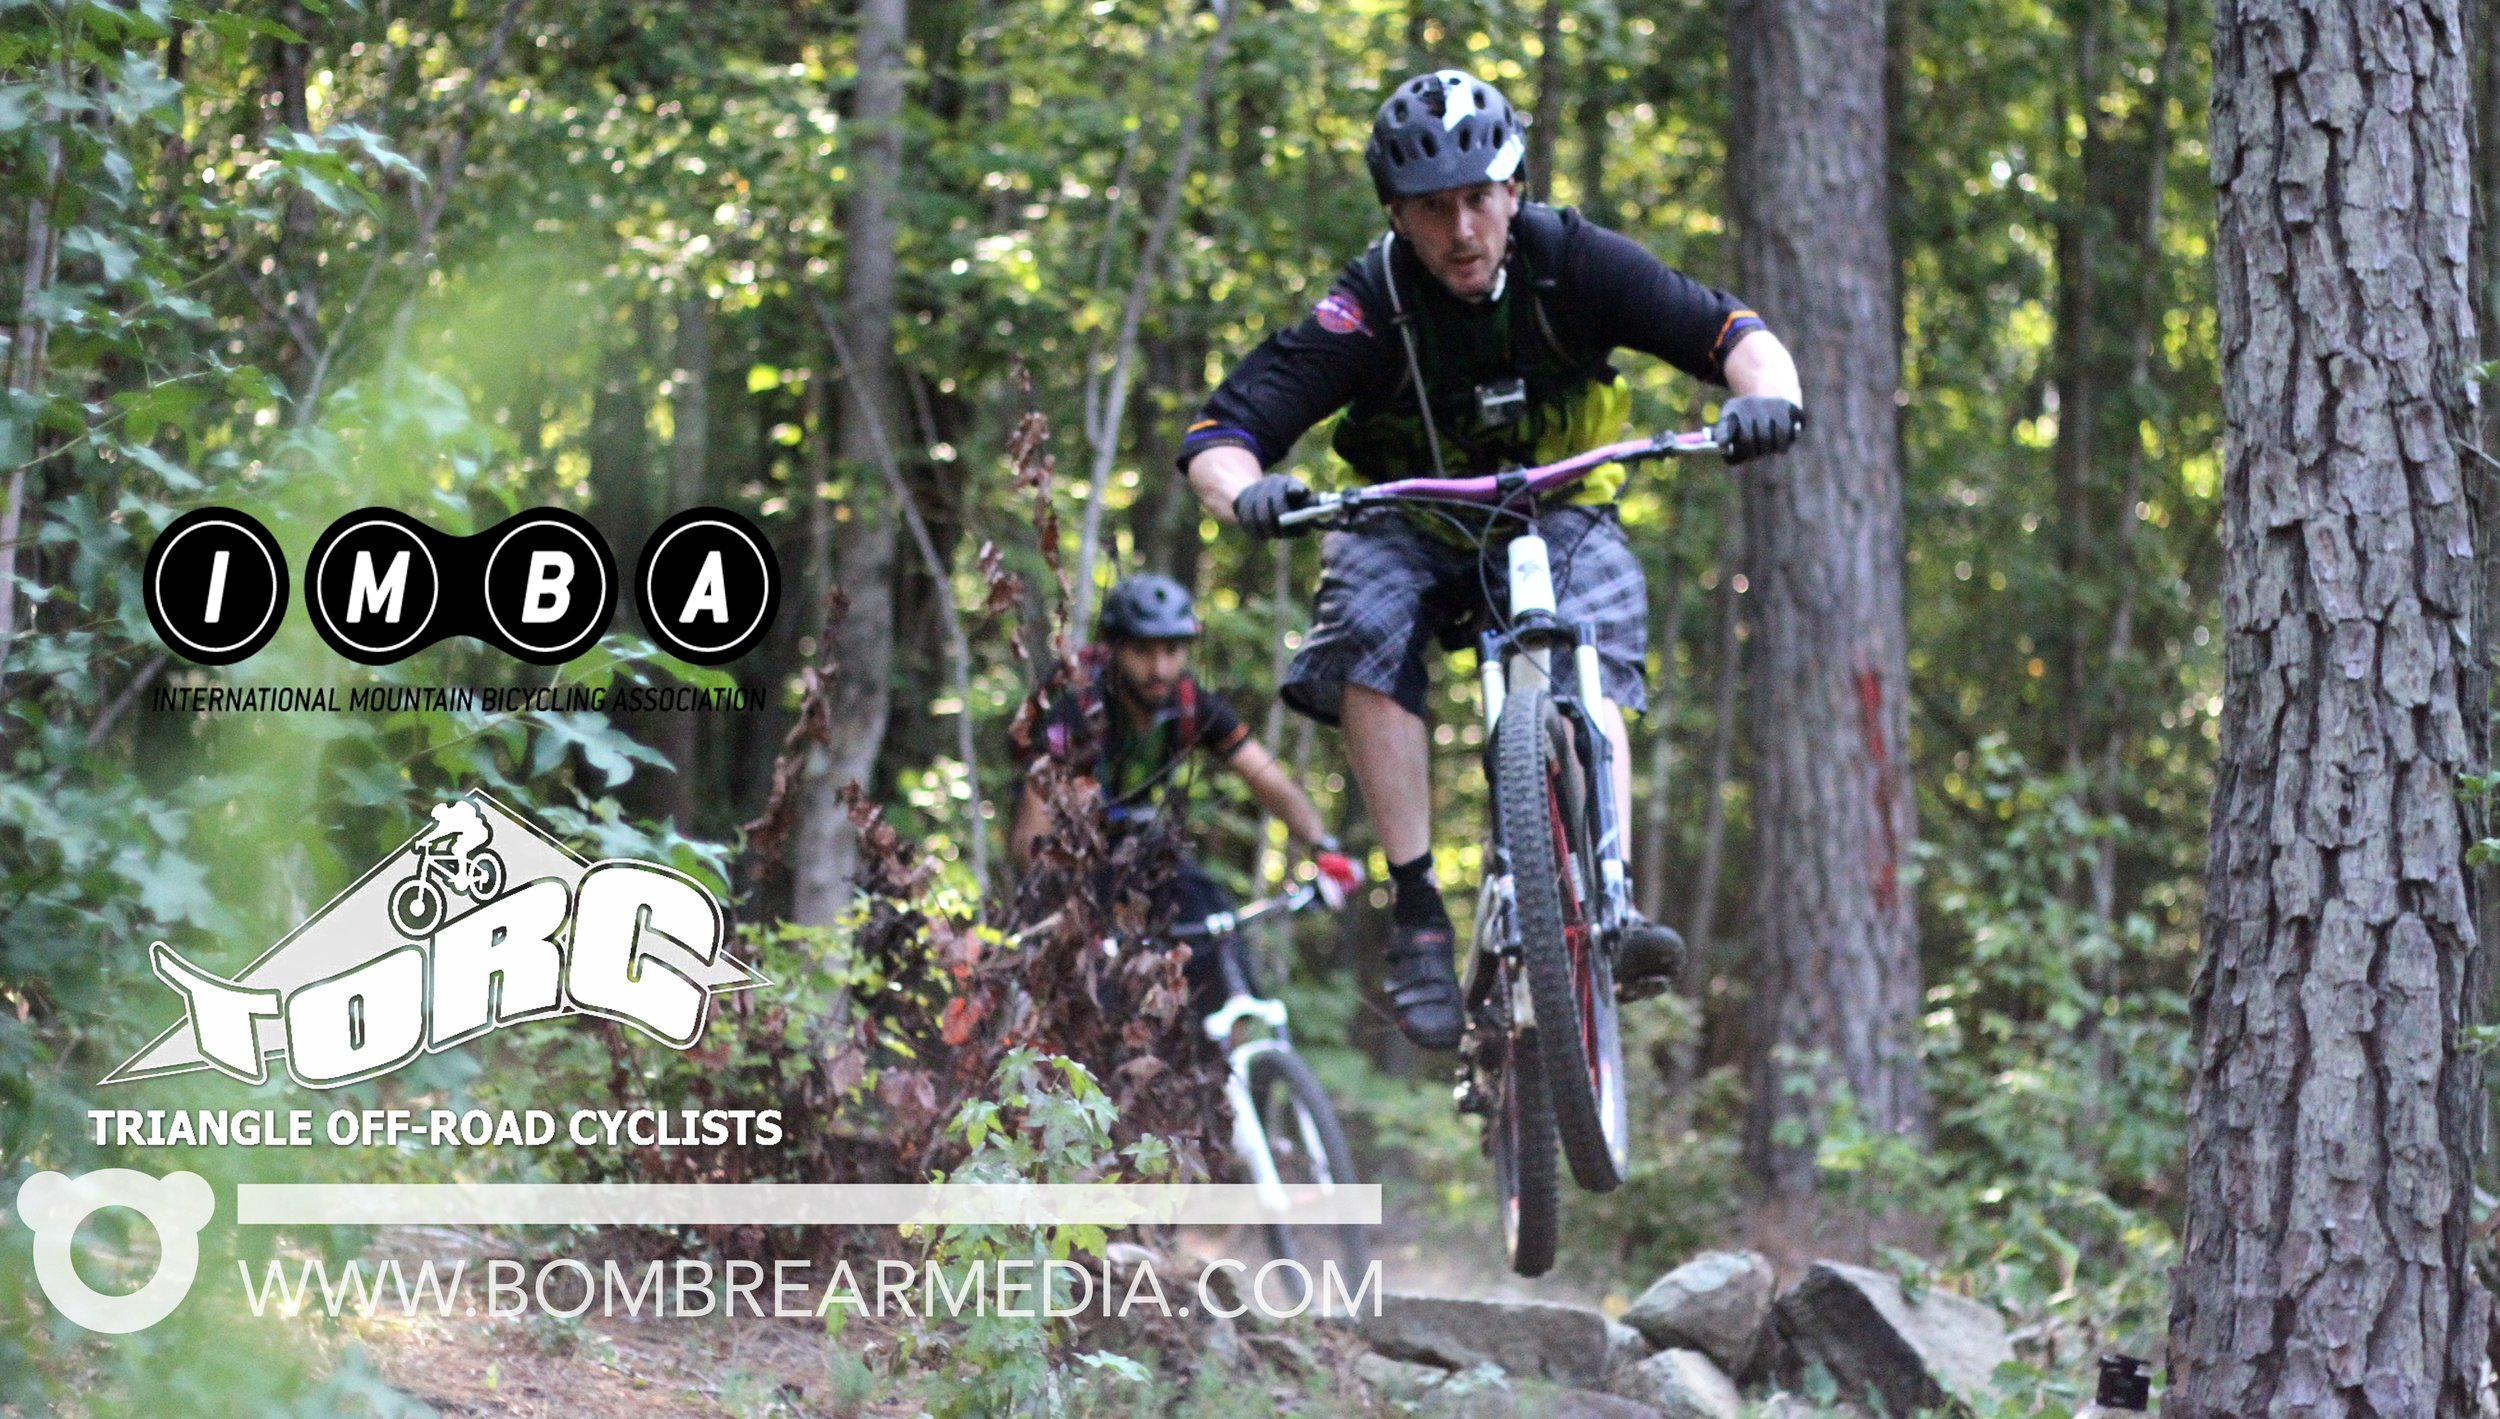 IMBA's TORC (Promotional Video)   Bombear Media's production of a promotional video for TORC, IMBA's chapter in North Carolina.